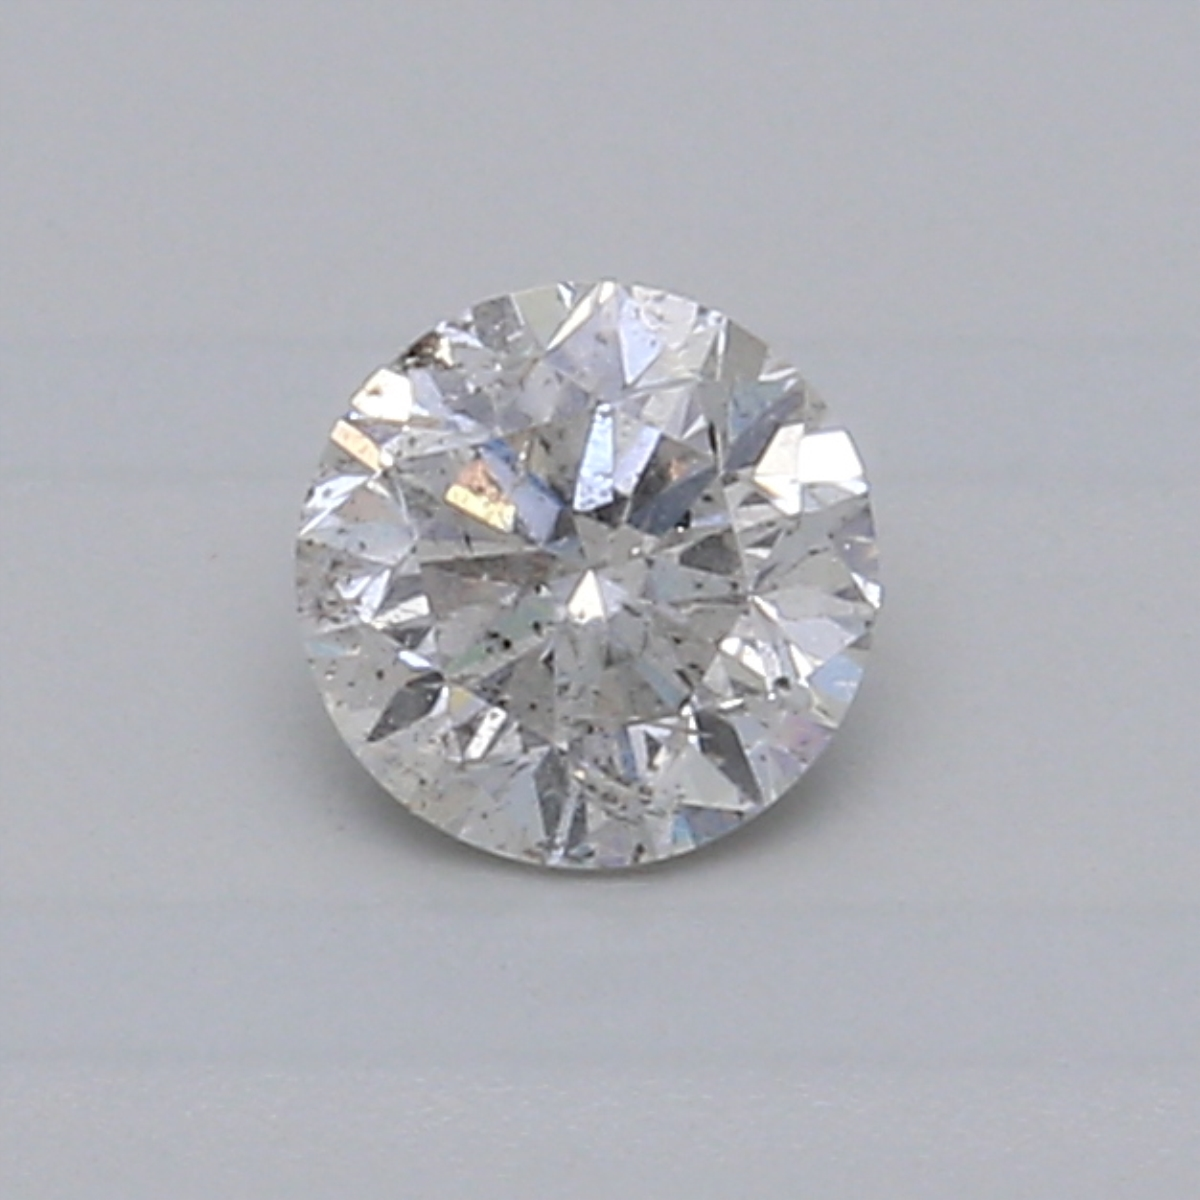 0.57 Carat E SI2 Very Good Diamond